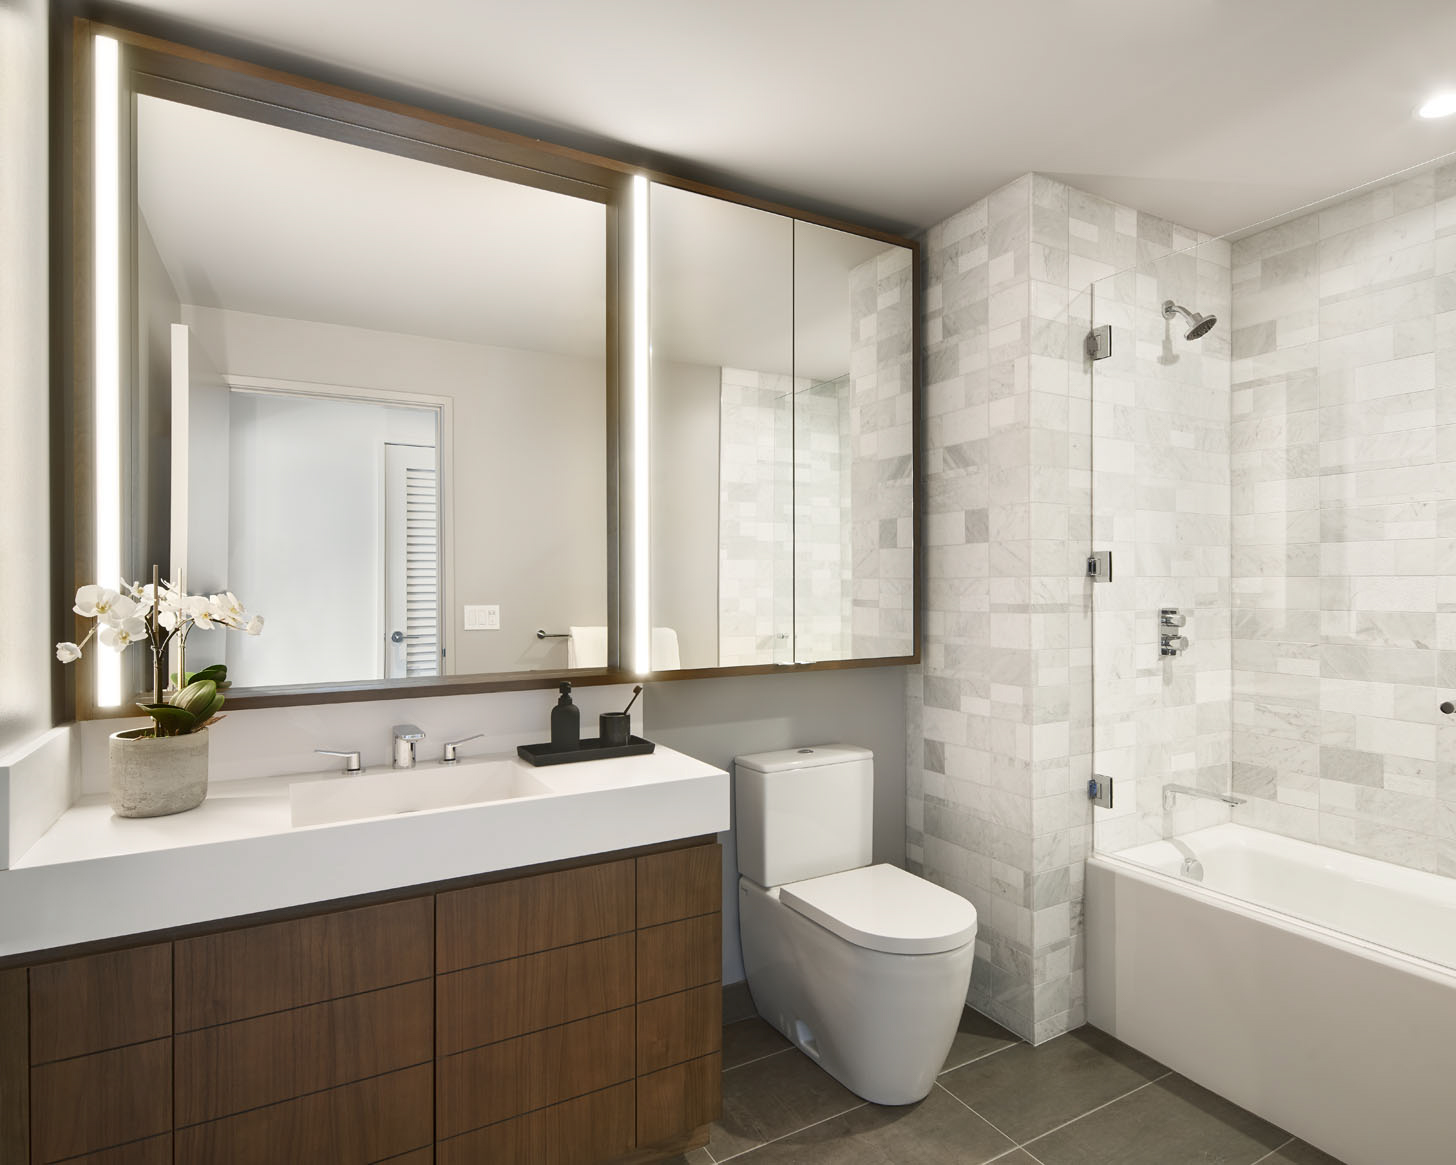 Serene guest bathrooms